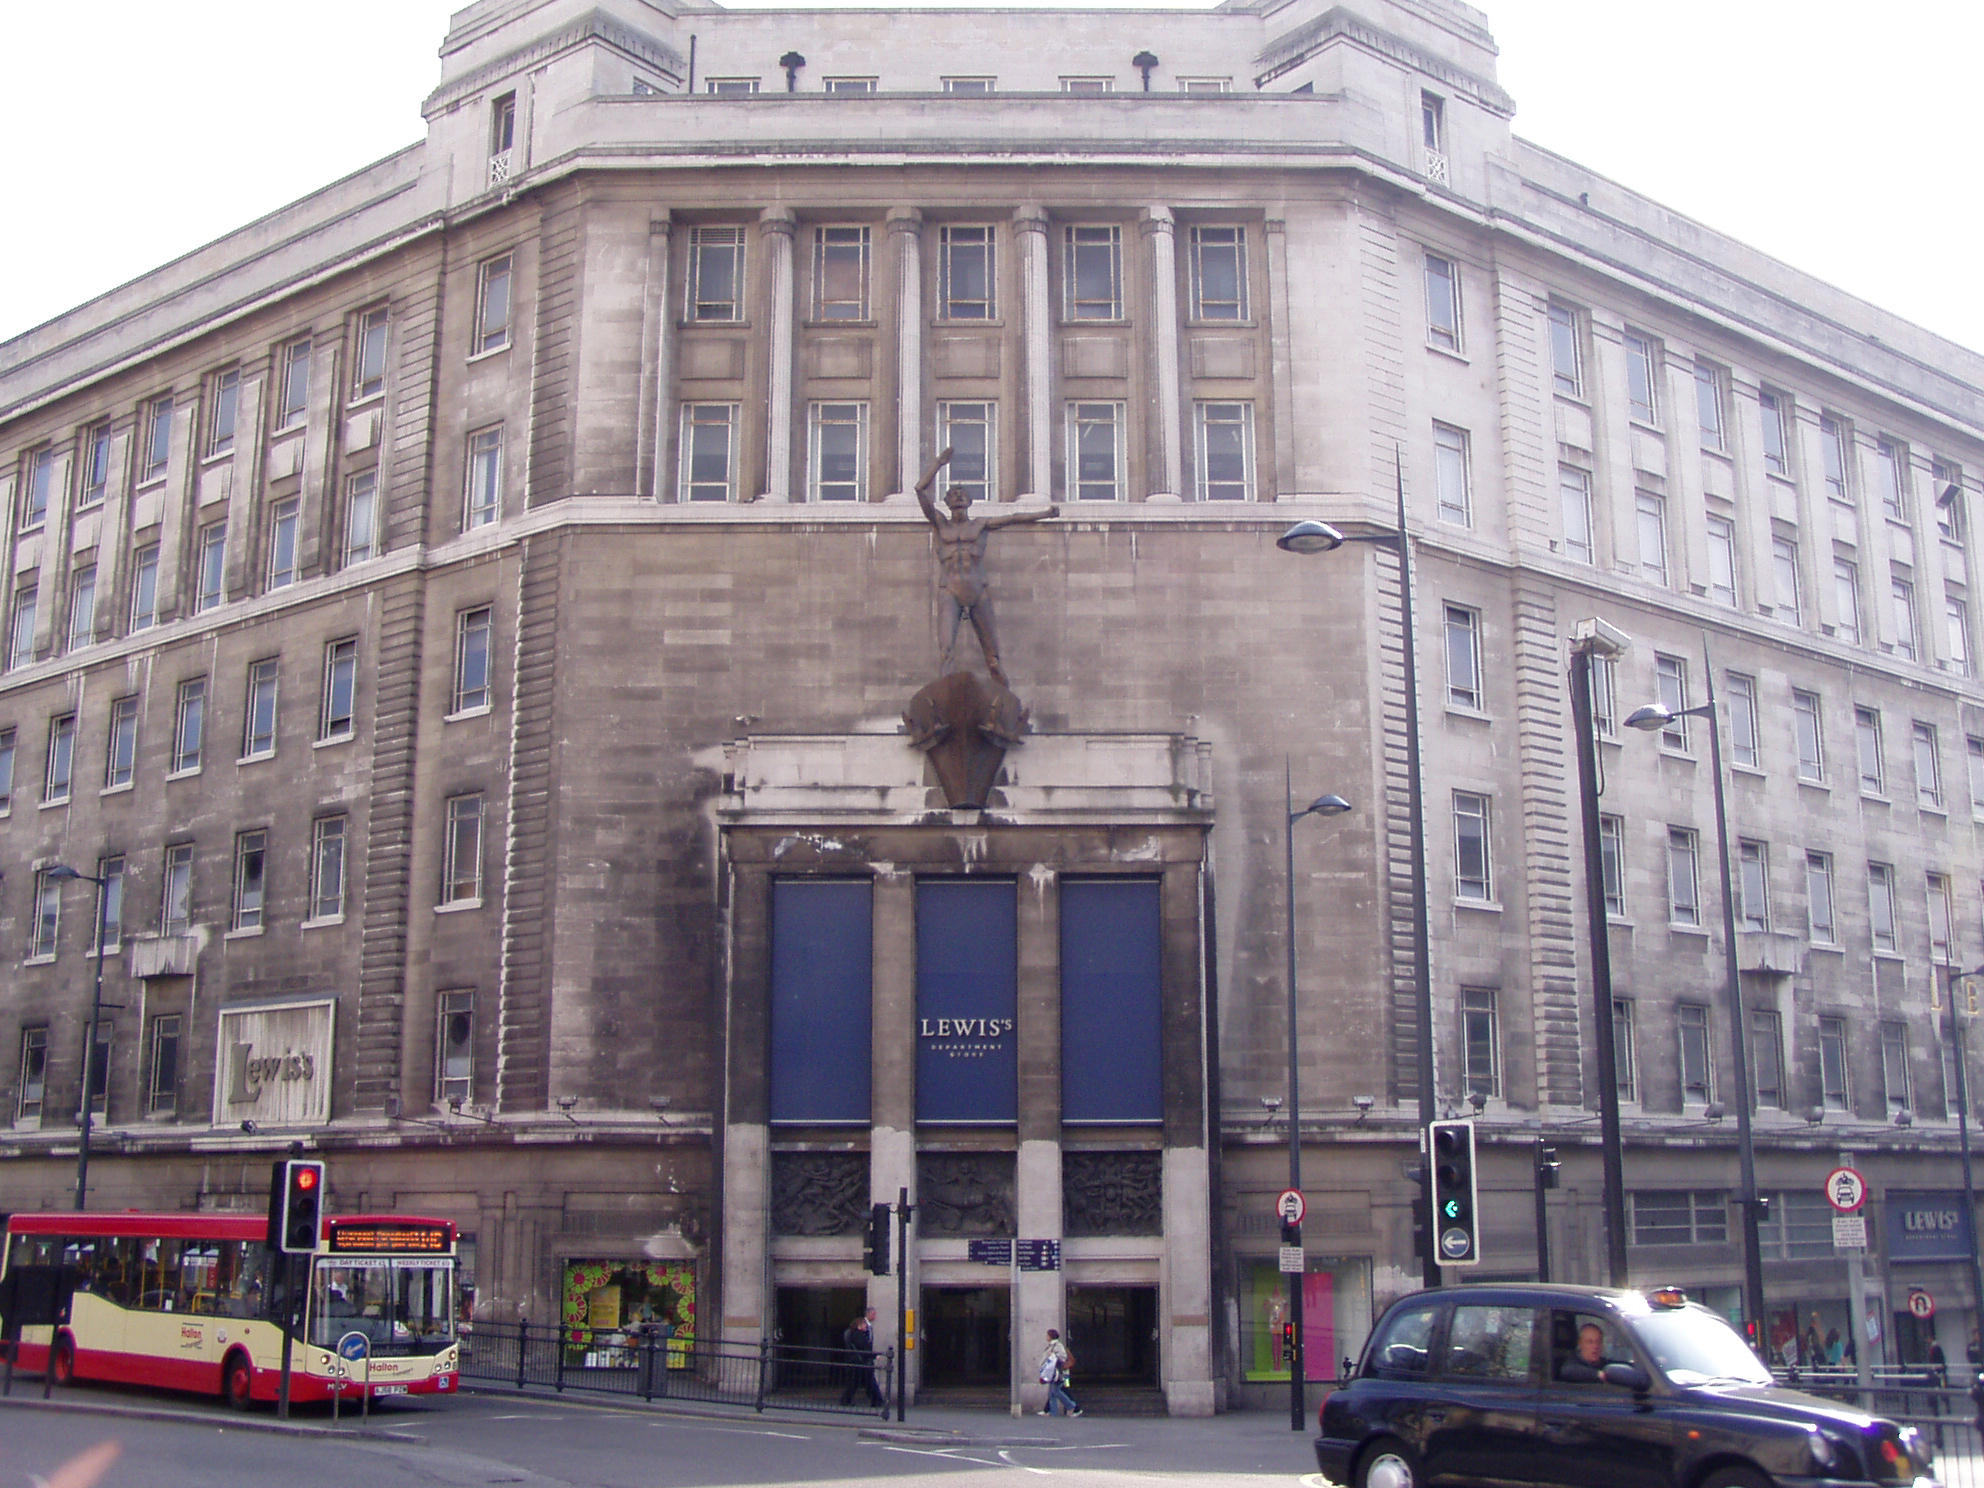 The corner entrance of Lewis's Department Store, Ranelagh Street, Liverpool